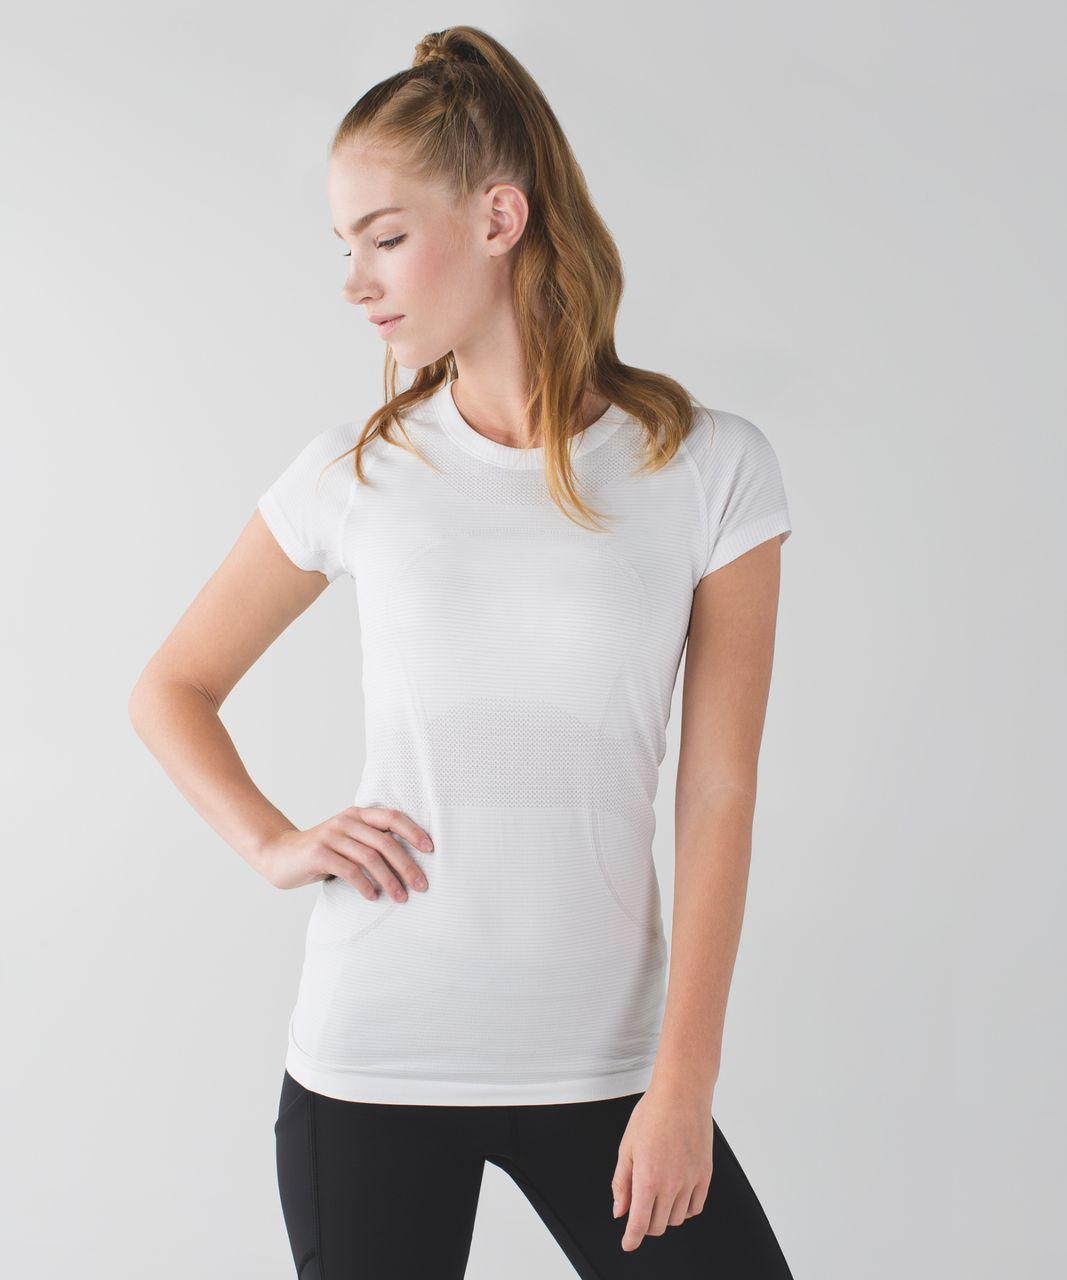 Lululemon Swiftly Tech Short Sleeve - White